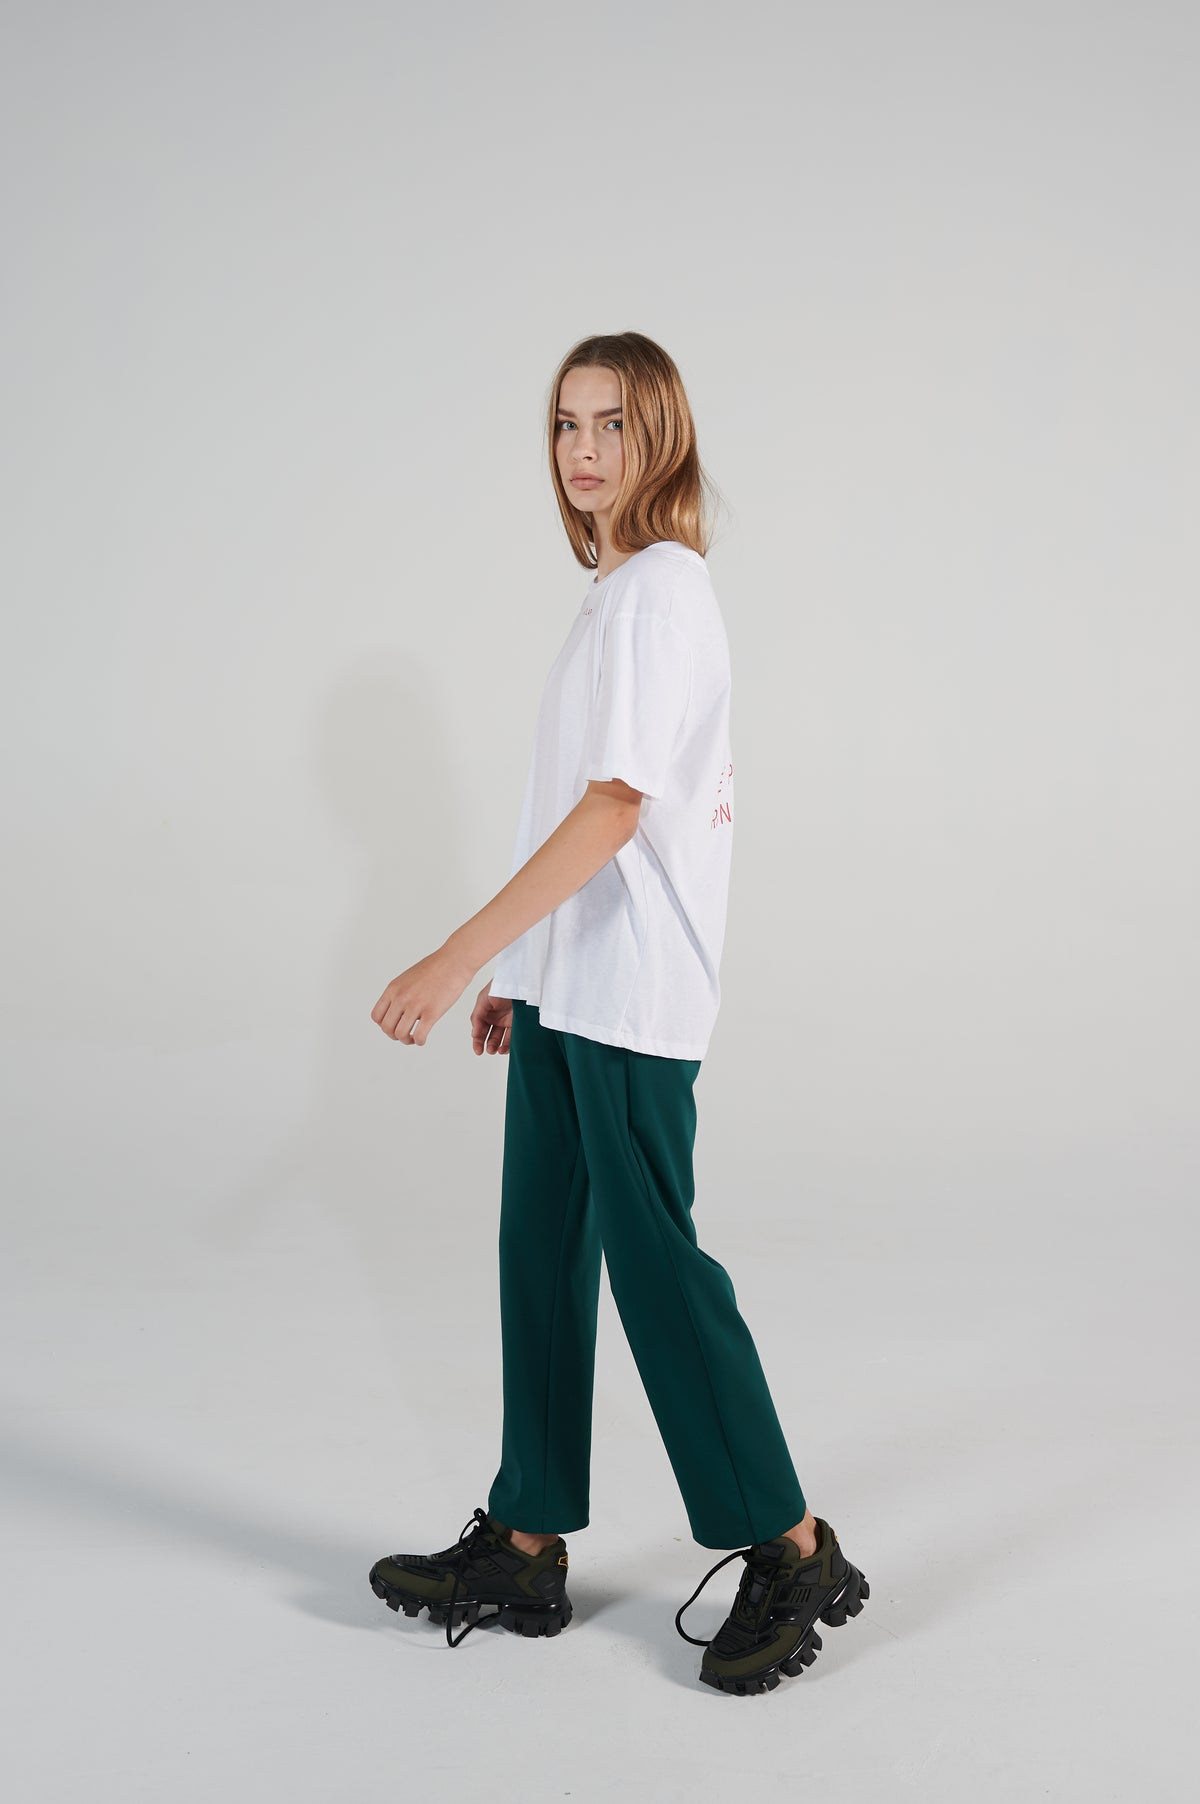 lounge-pants-le-slap-green-with-pocket-high-waist-lookbook.jpg